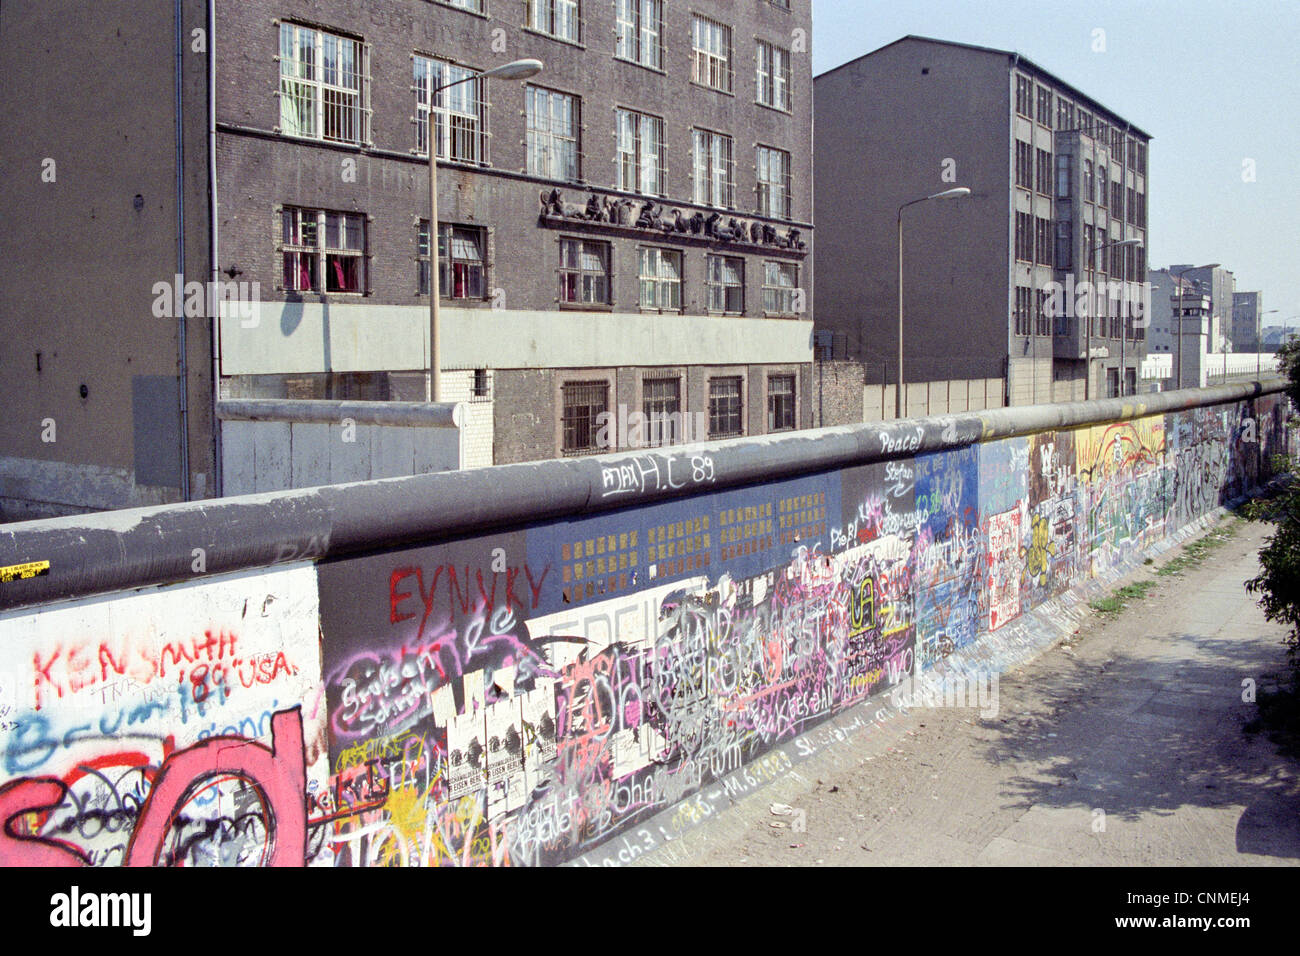 Checkpoint Charlie at Friedrichstrasse - Berlin Wall 1989 - Stock Image